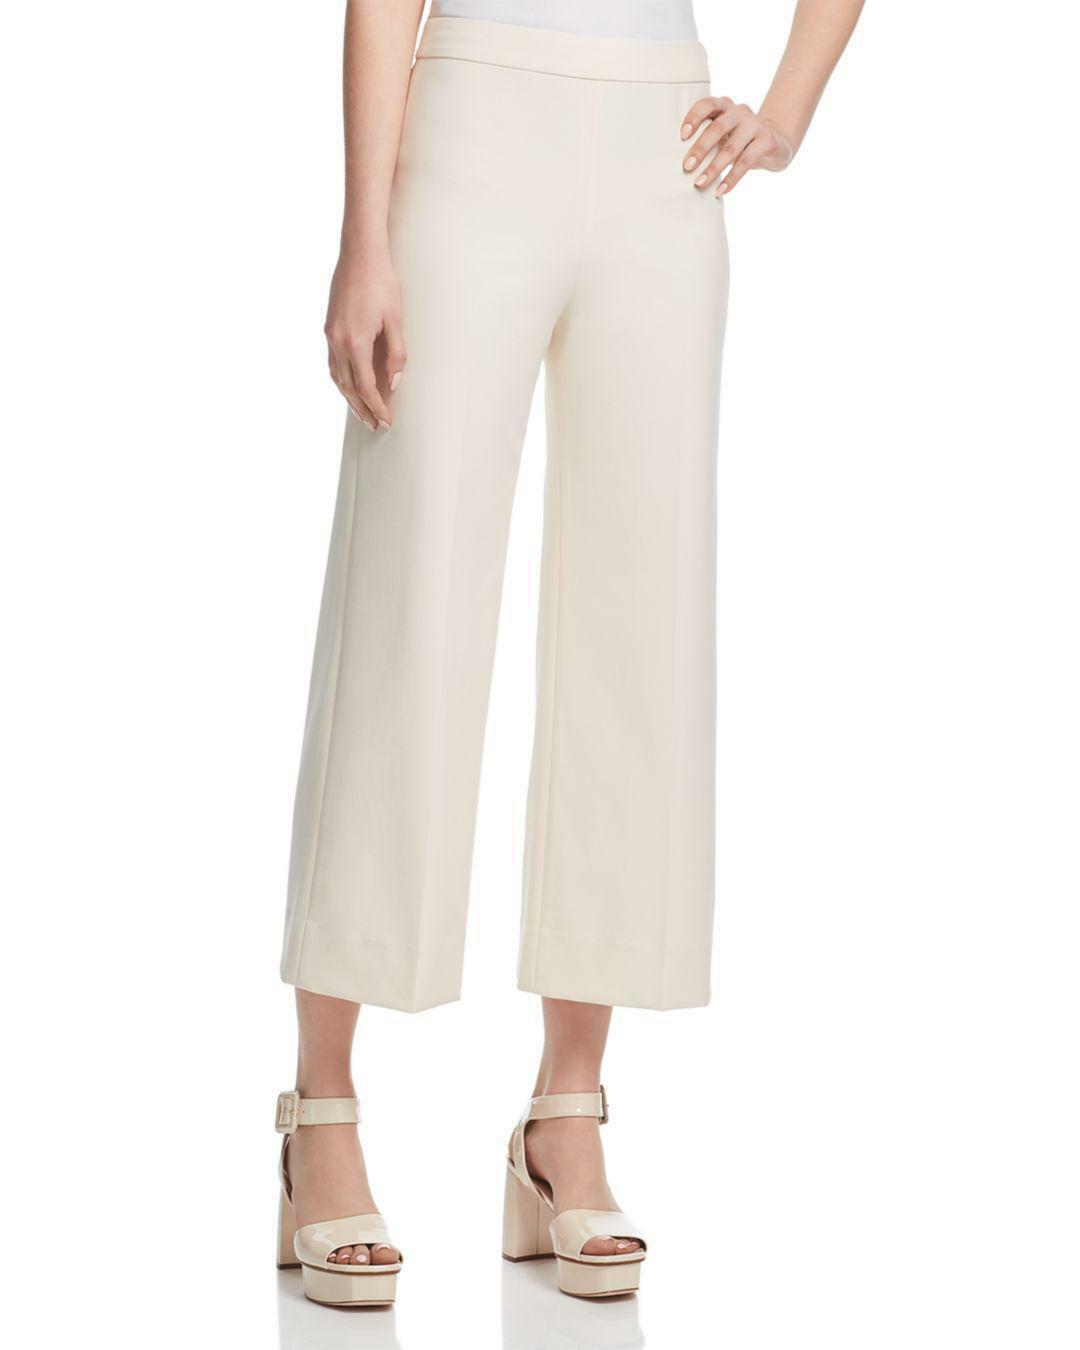 495 REBECCA TAYLOR WOMEN'S BEIGE TAYLOR HIGH-RISE CULOTTES CASUAL PANTS SIZE 8